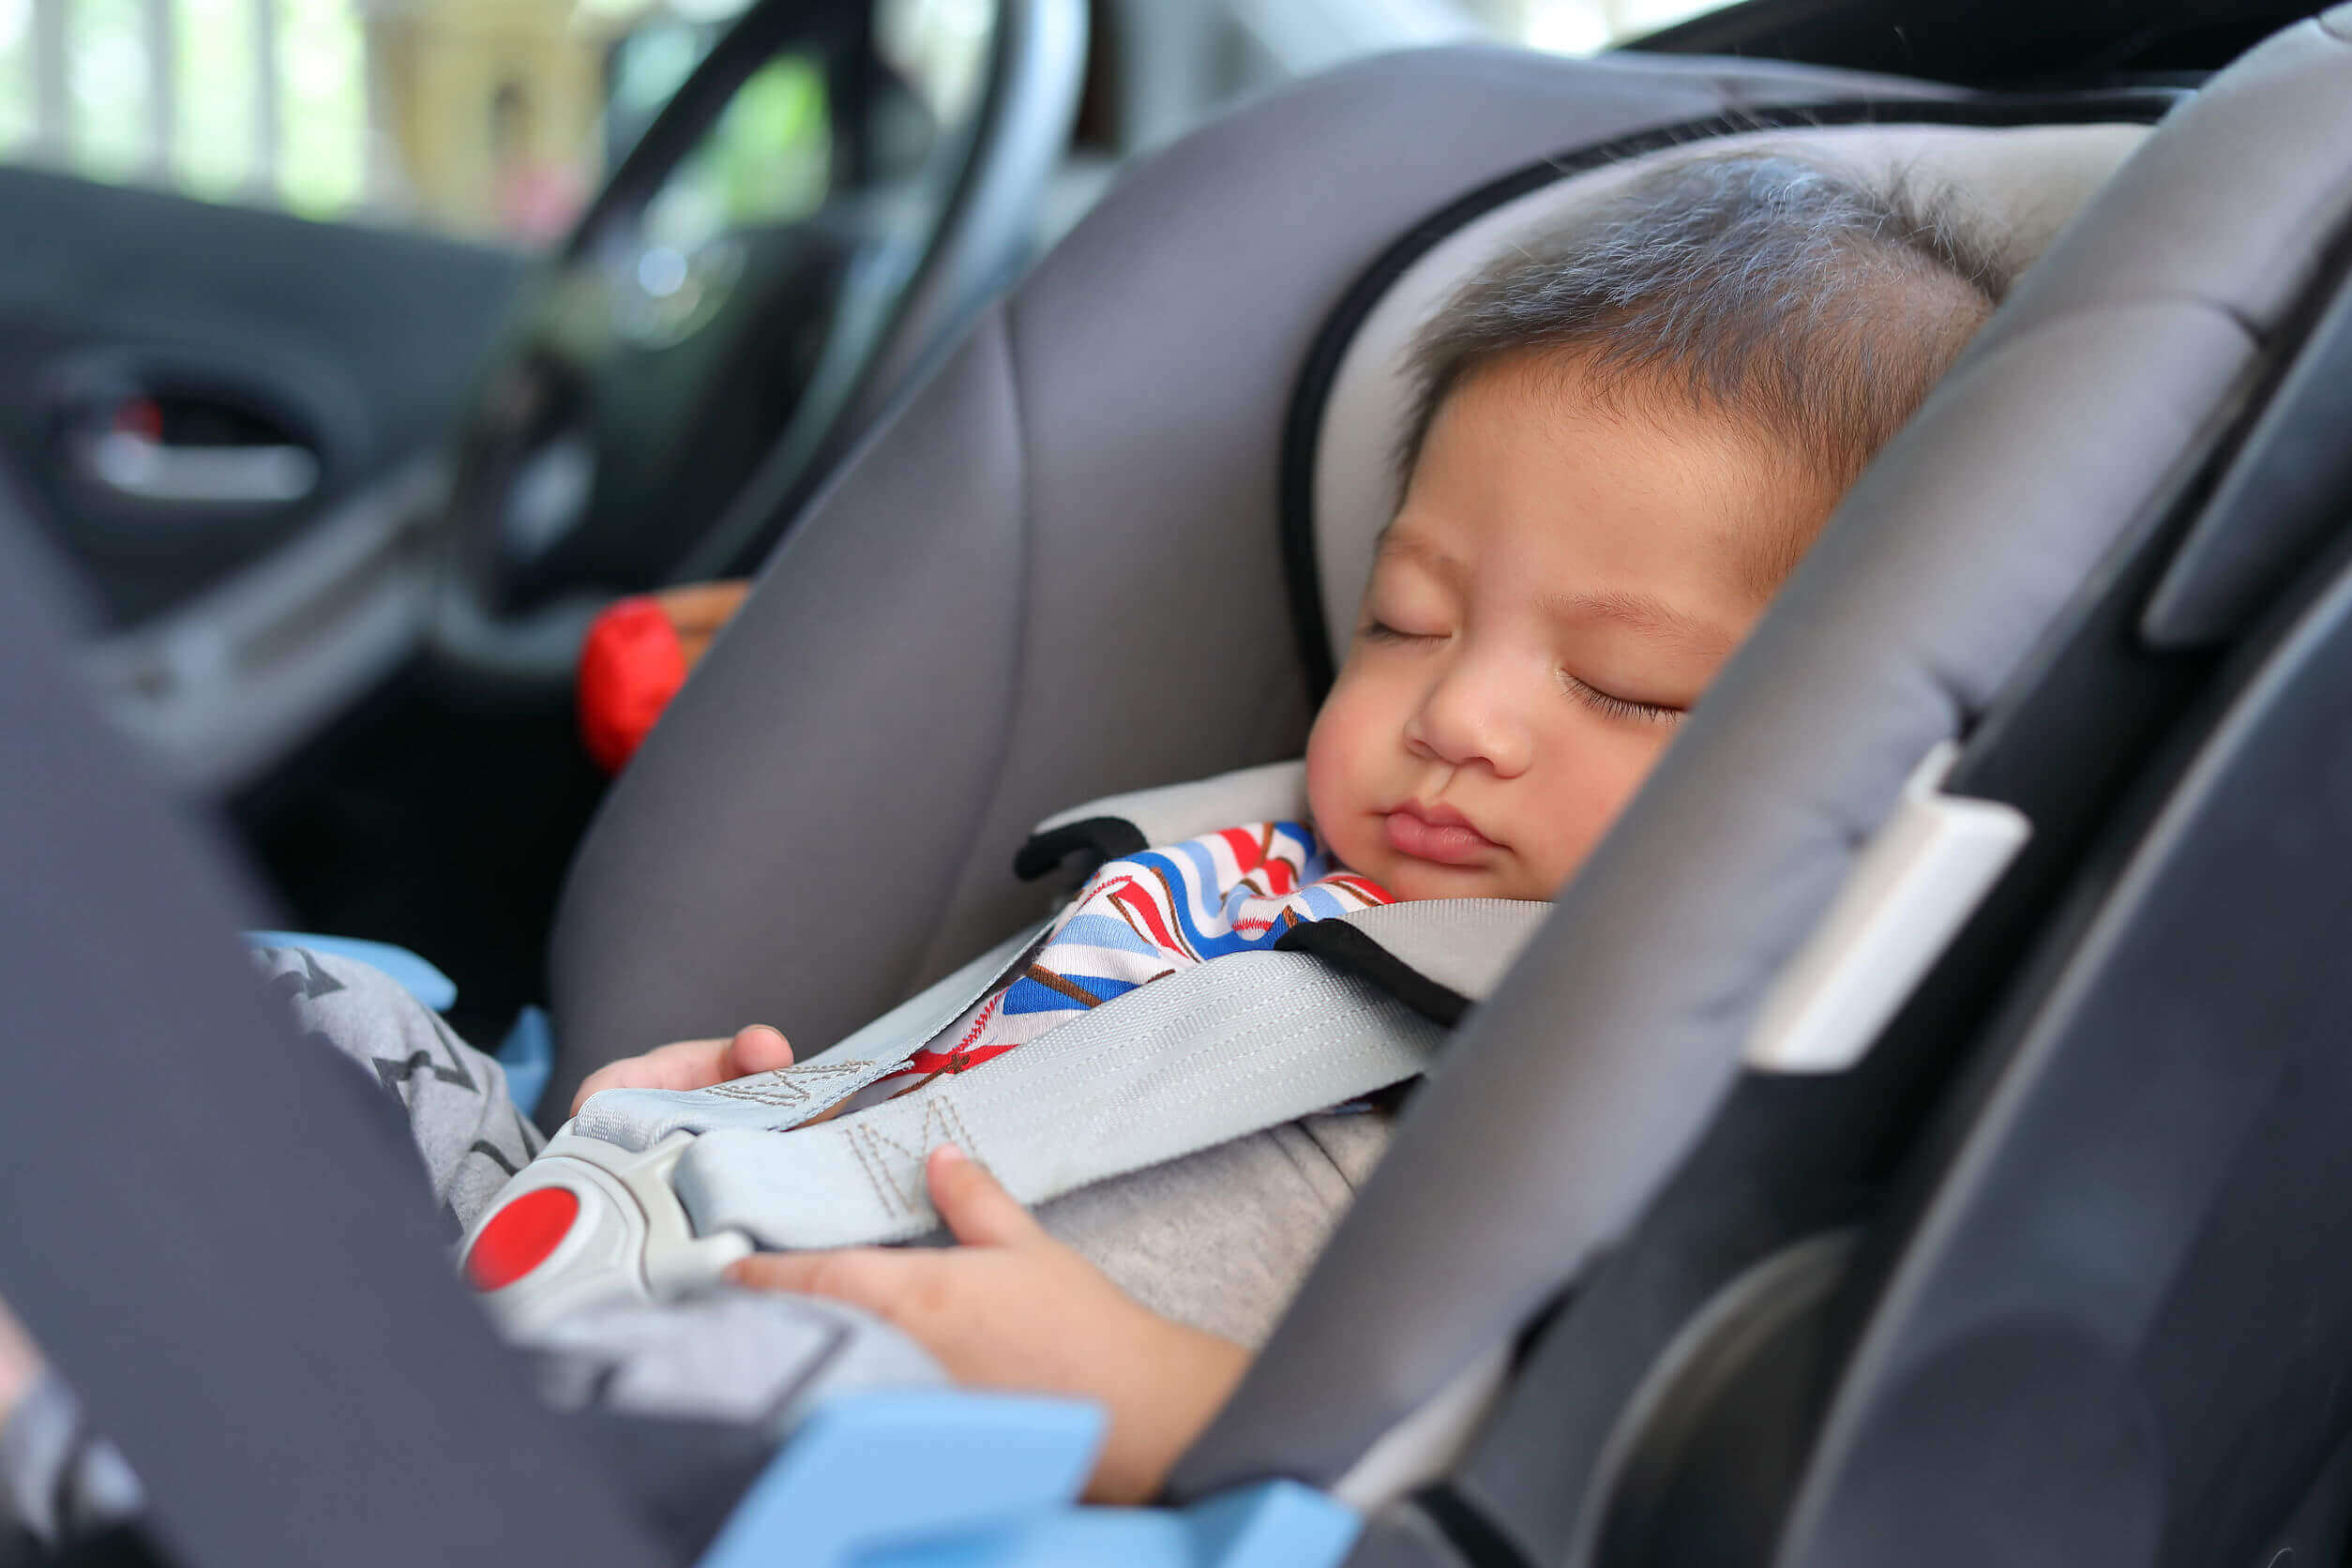 An infant sleeping in a car seat.